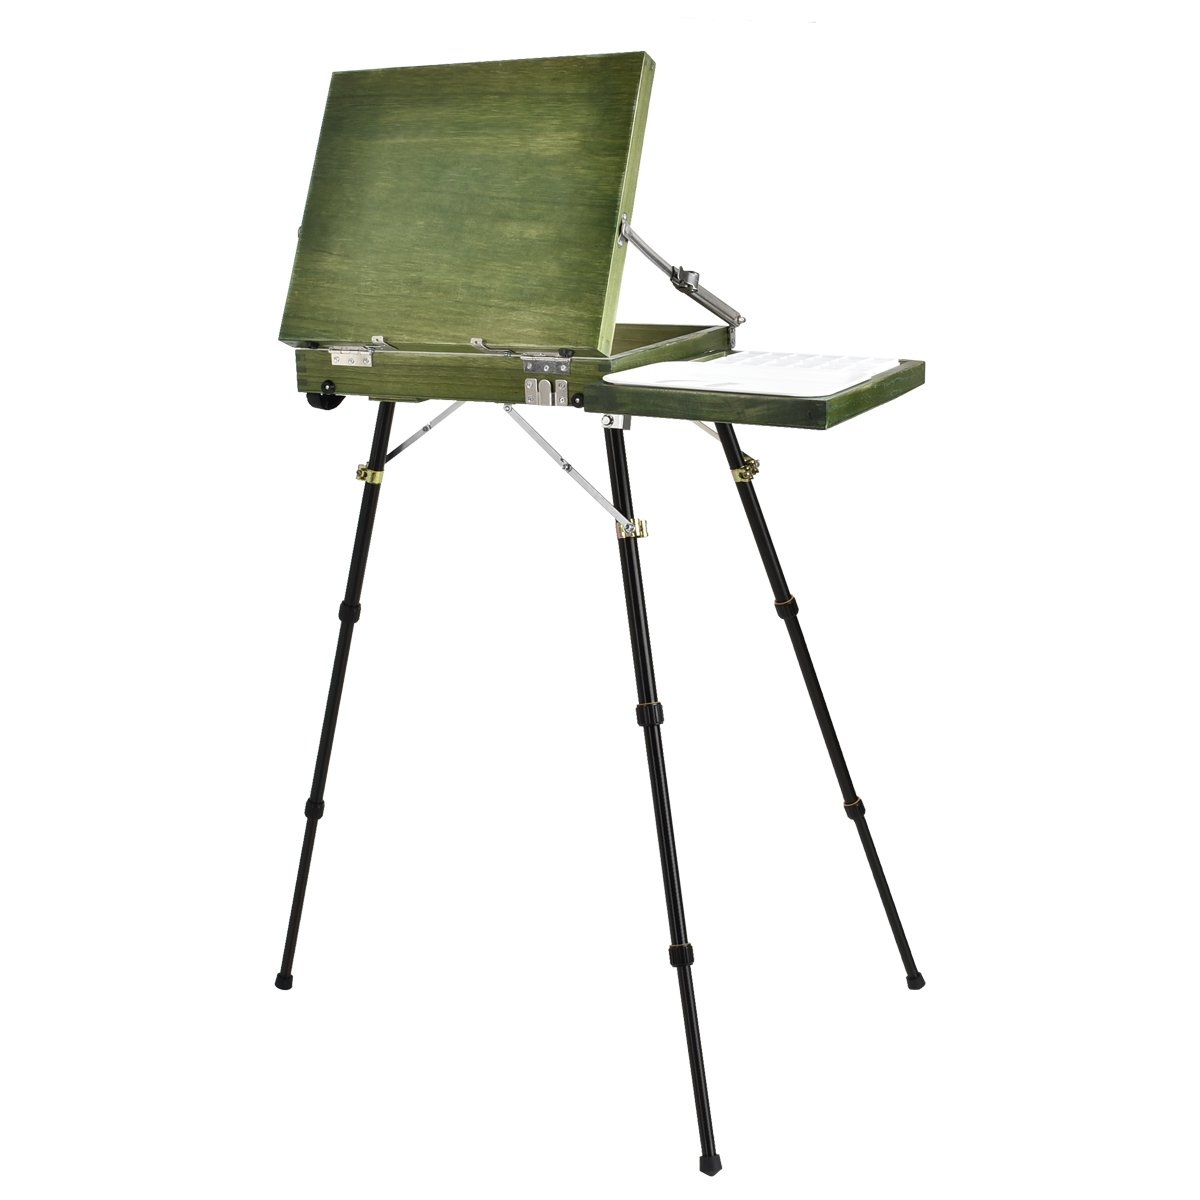 Portable Art Easel for Watercolor painting, QINUKER French Style Adjustable Wooden Artist Easel & Sketchbox , Wooden Pallete and Shoulder Strap